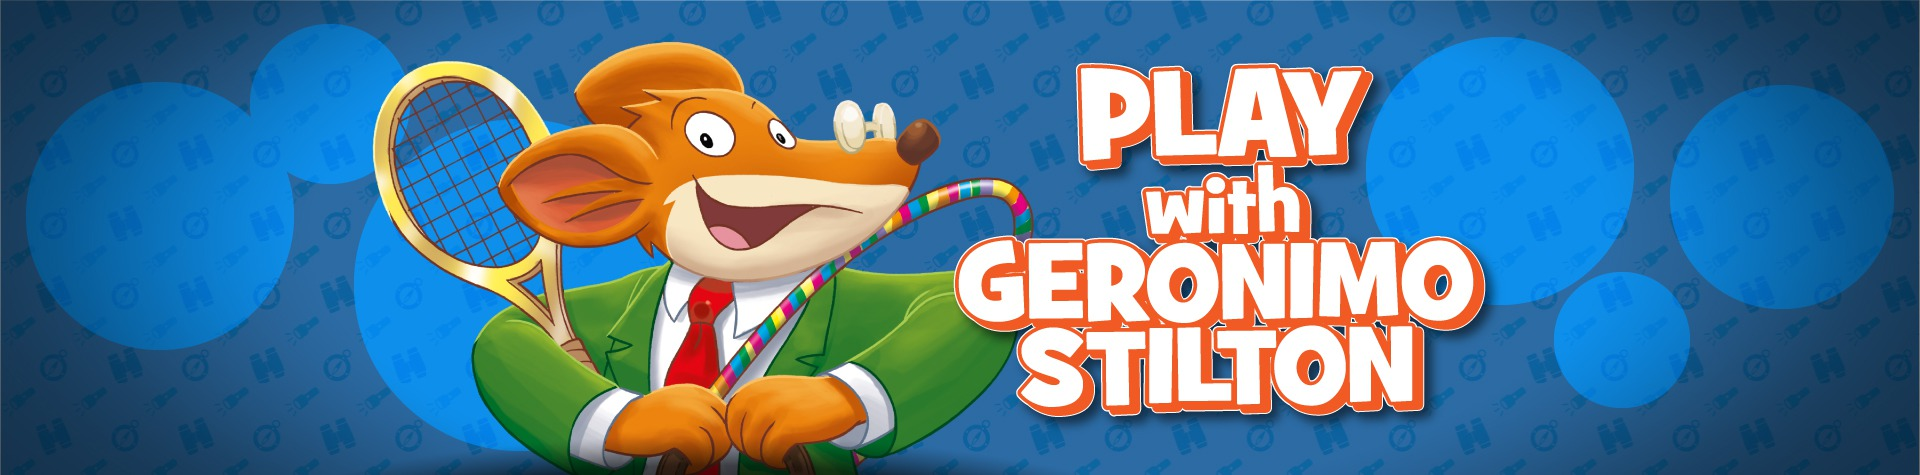 Play with geronimo